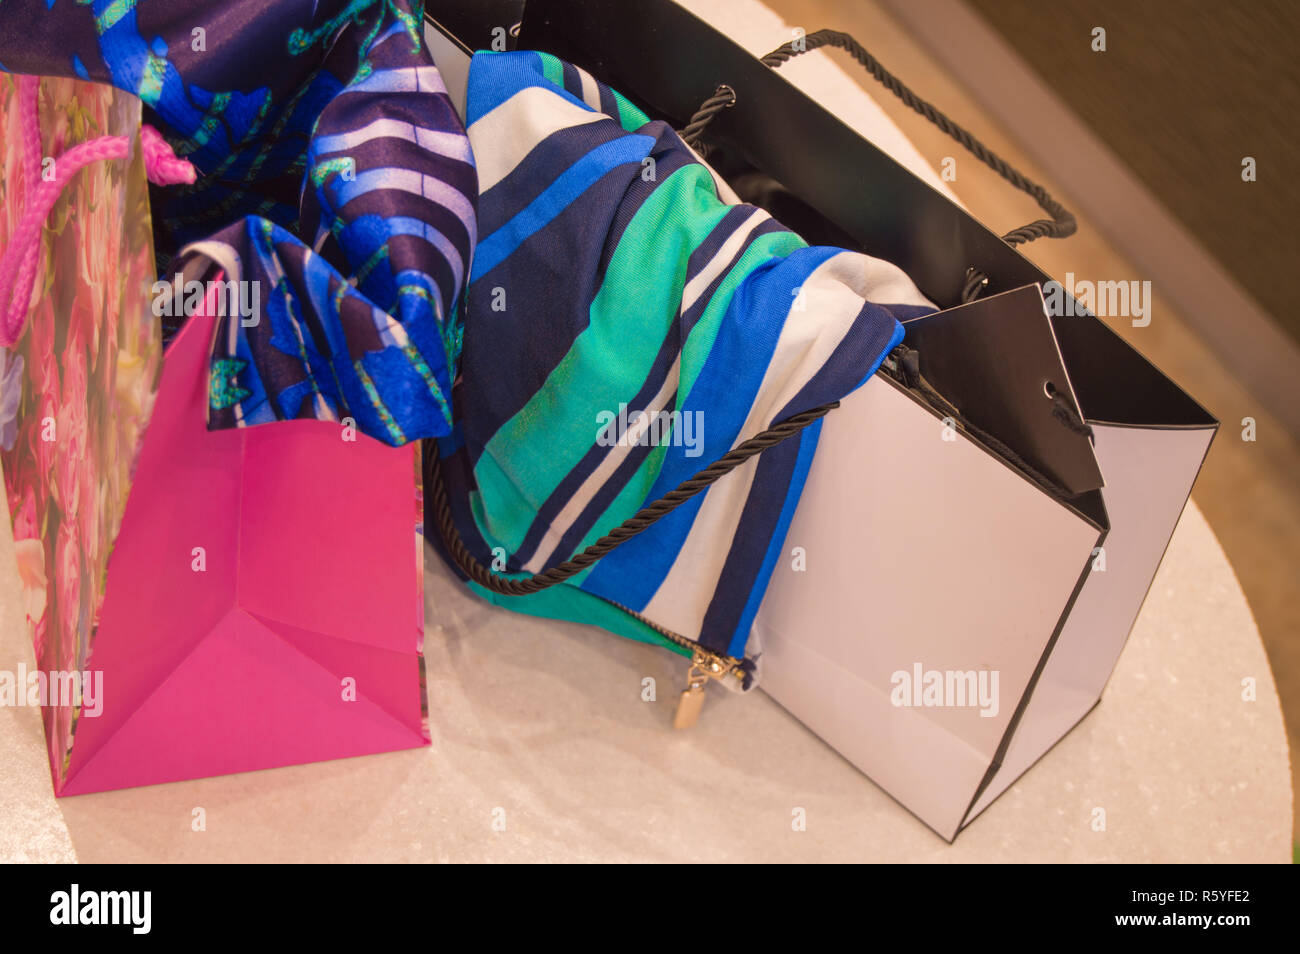 Paper shopping bags with fashionable clothes bought in the store - Stock Image